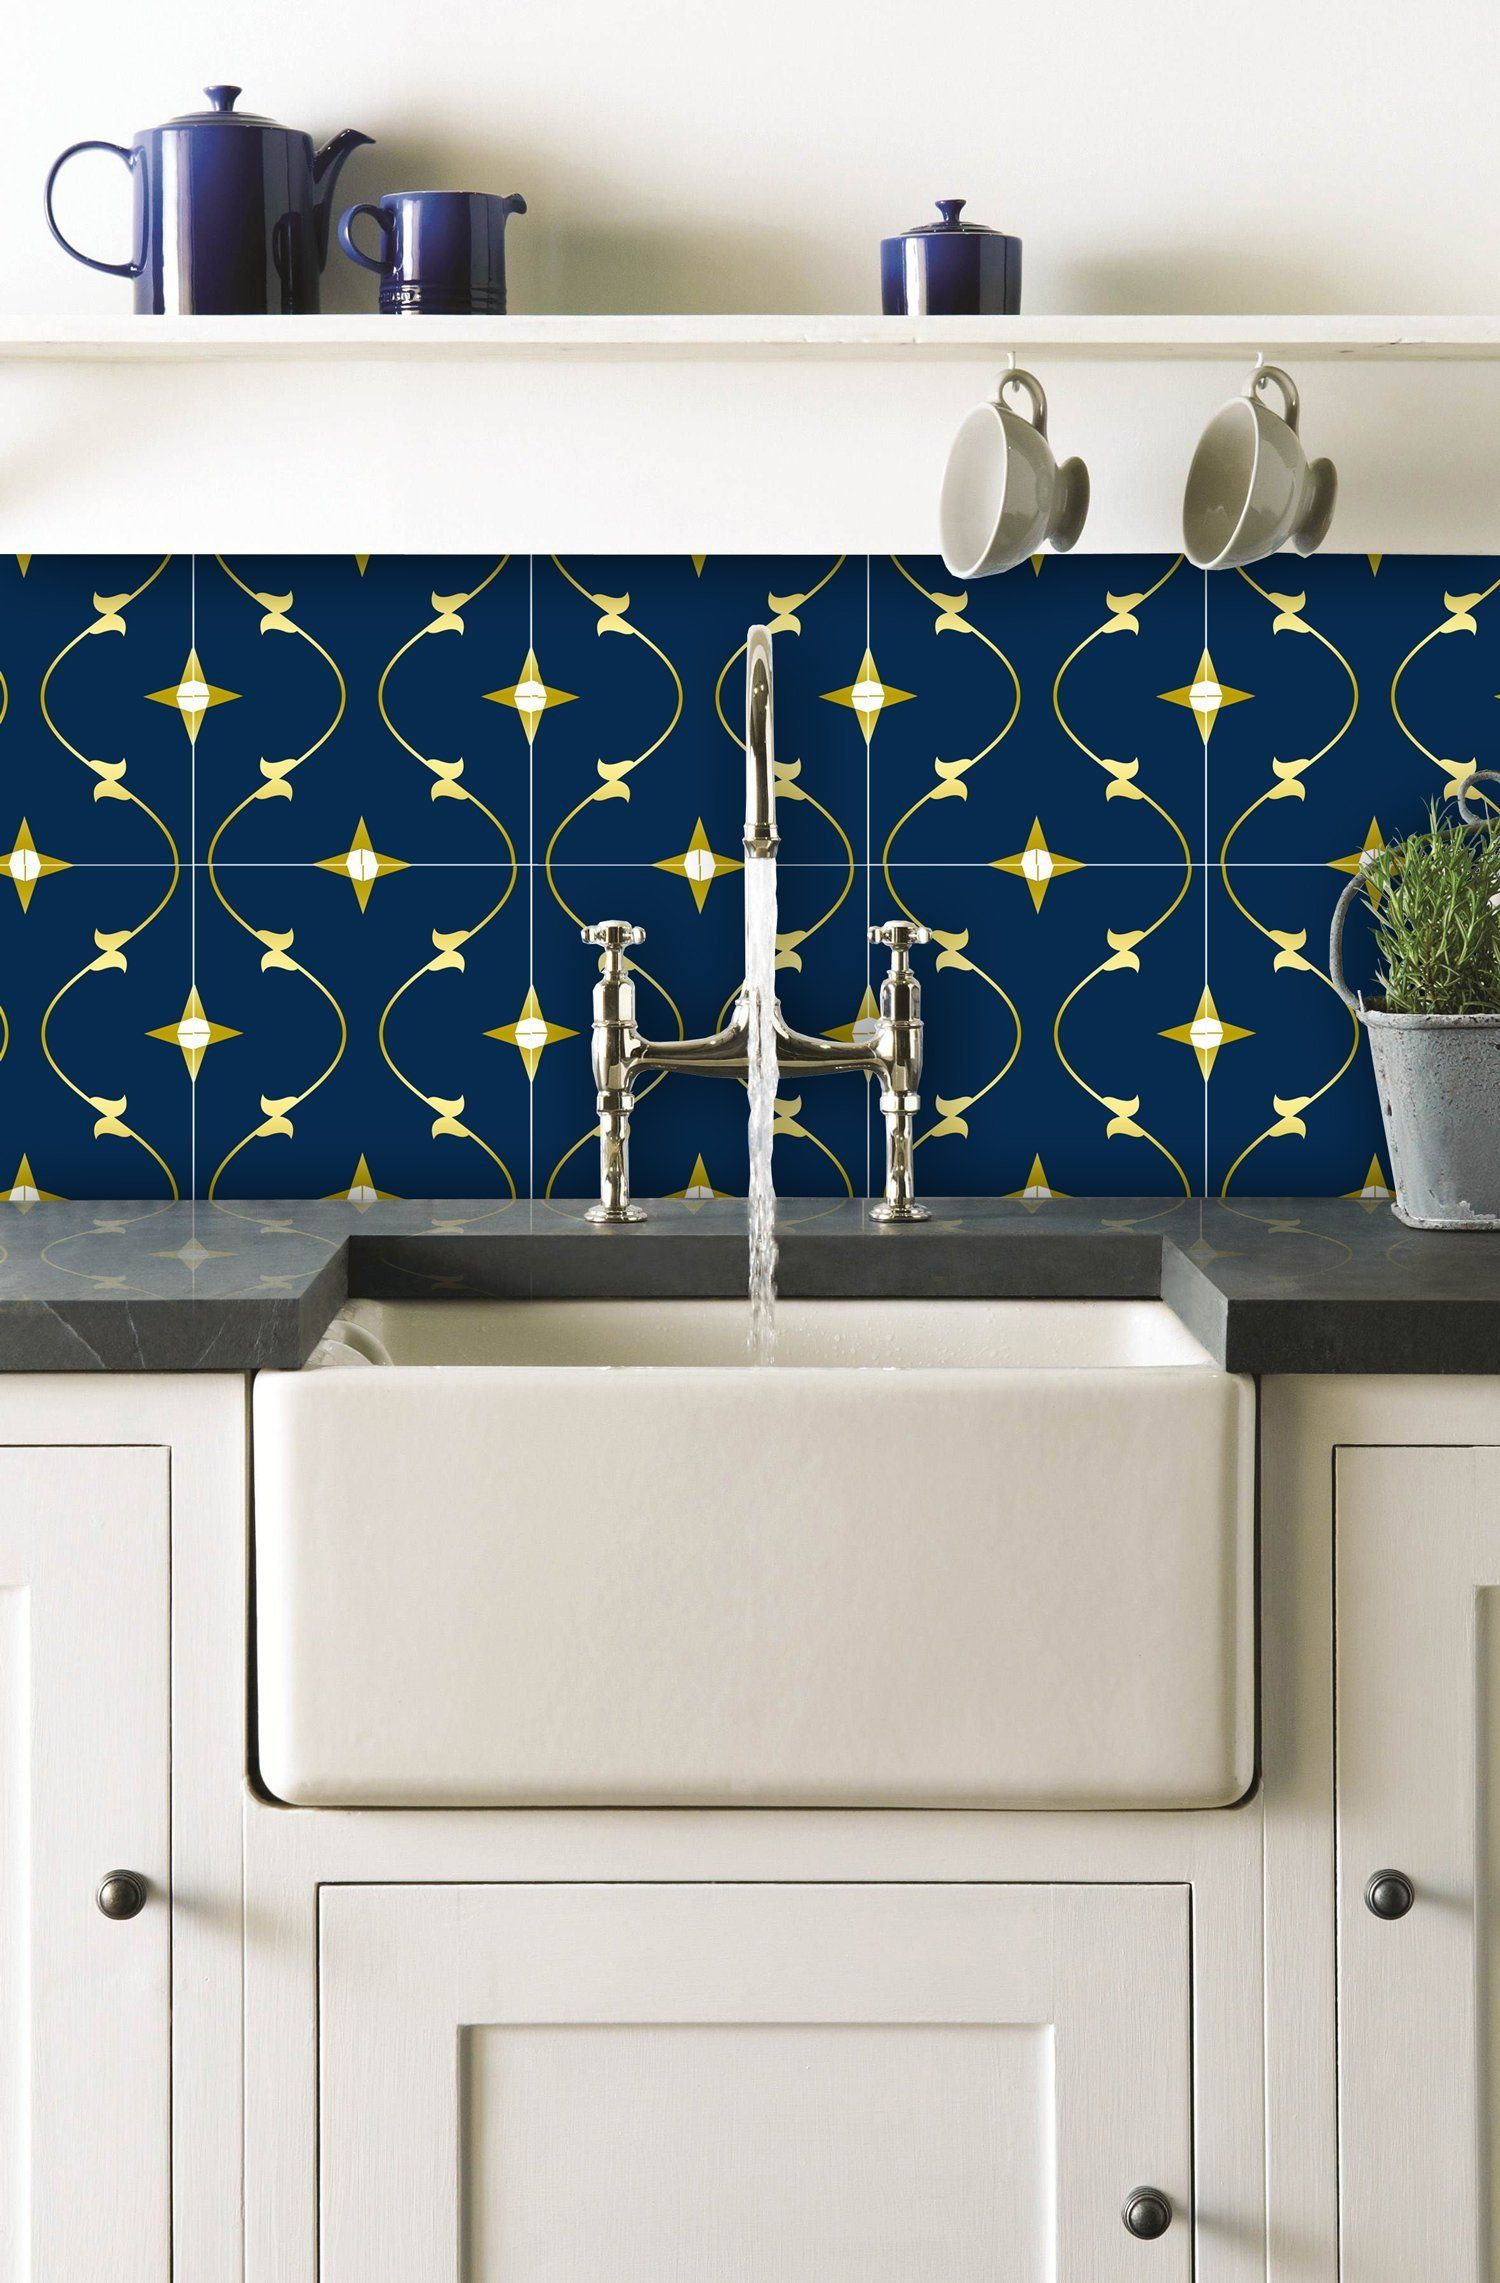 Tile Stickers Tile Decals For Kitchen Bathroom Wall Or Backsplash Waterproof And Removable Spanish02 Vinyl Wall Tiles Kitchen Tiles Design Blue Tile Wall